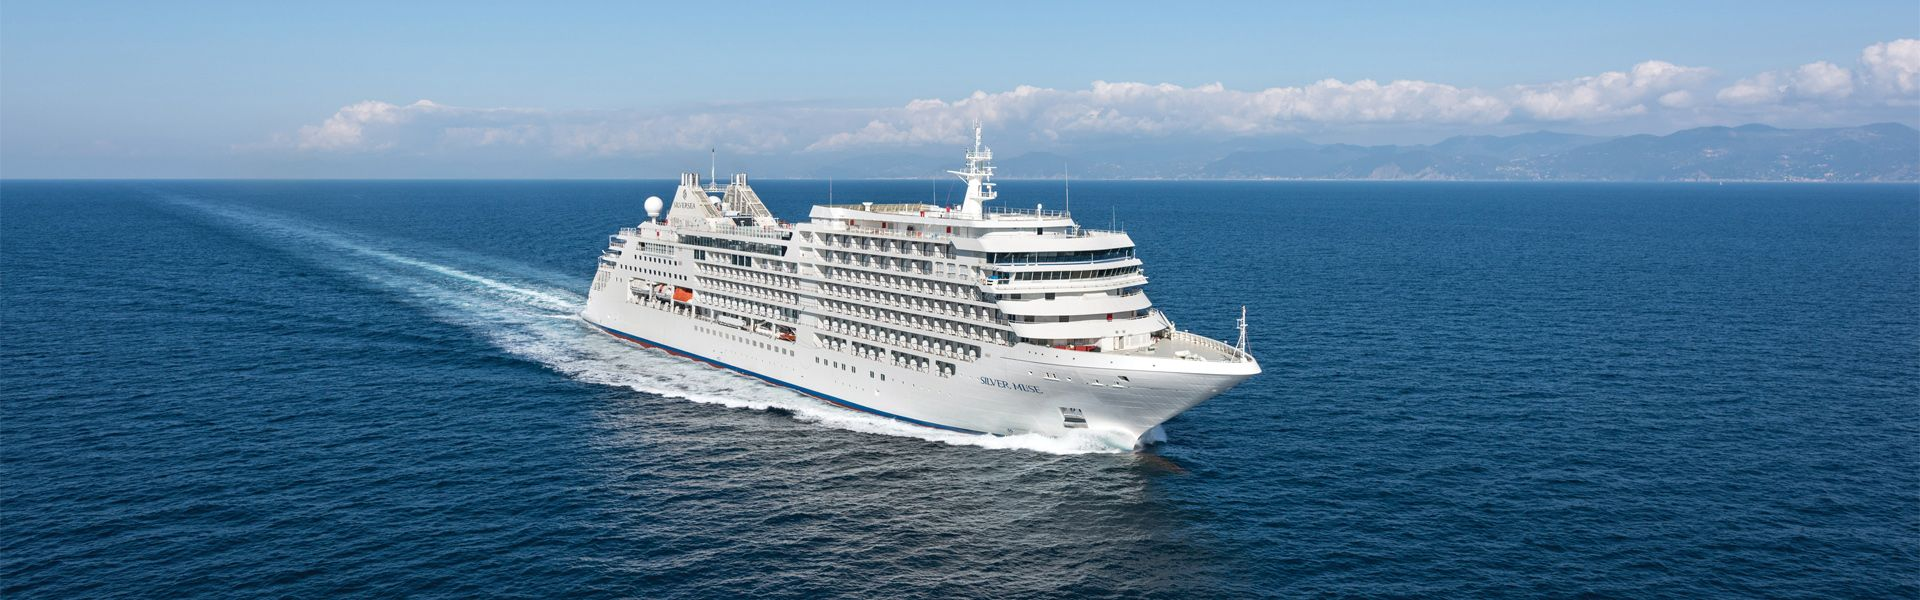 Silversea Luxury Cruises - Sales Team